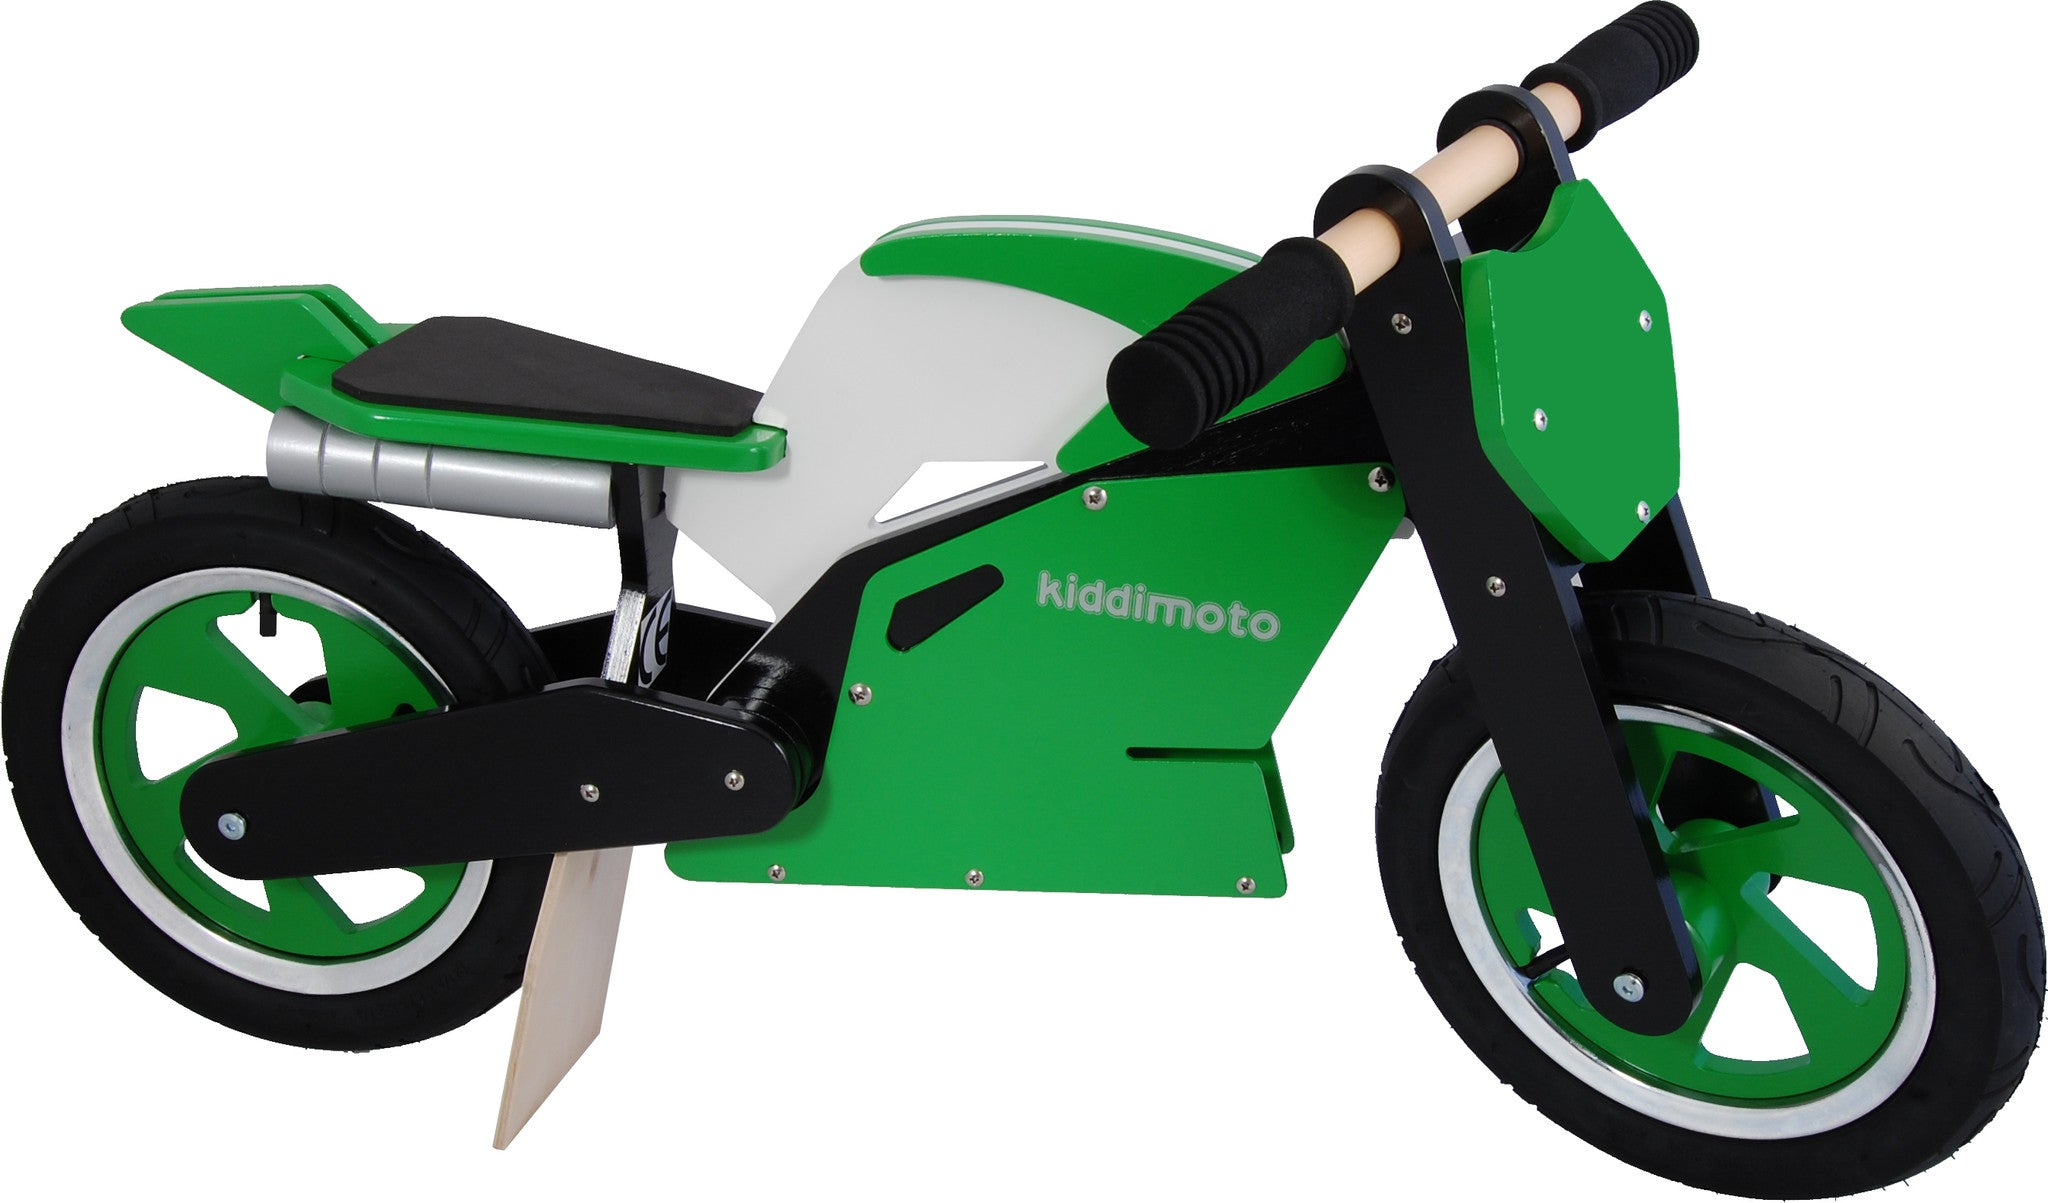 A photo of our Green Superbike, with a lightweight timber frame, a motorbike styled seat and wooden spinning handlebars, and motorbike style rims